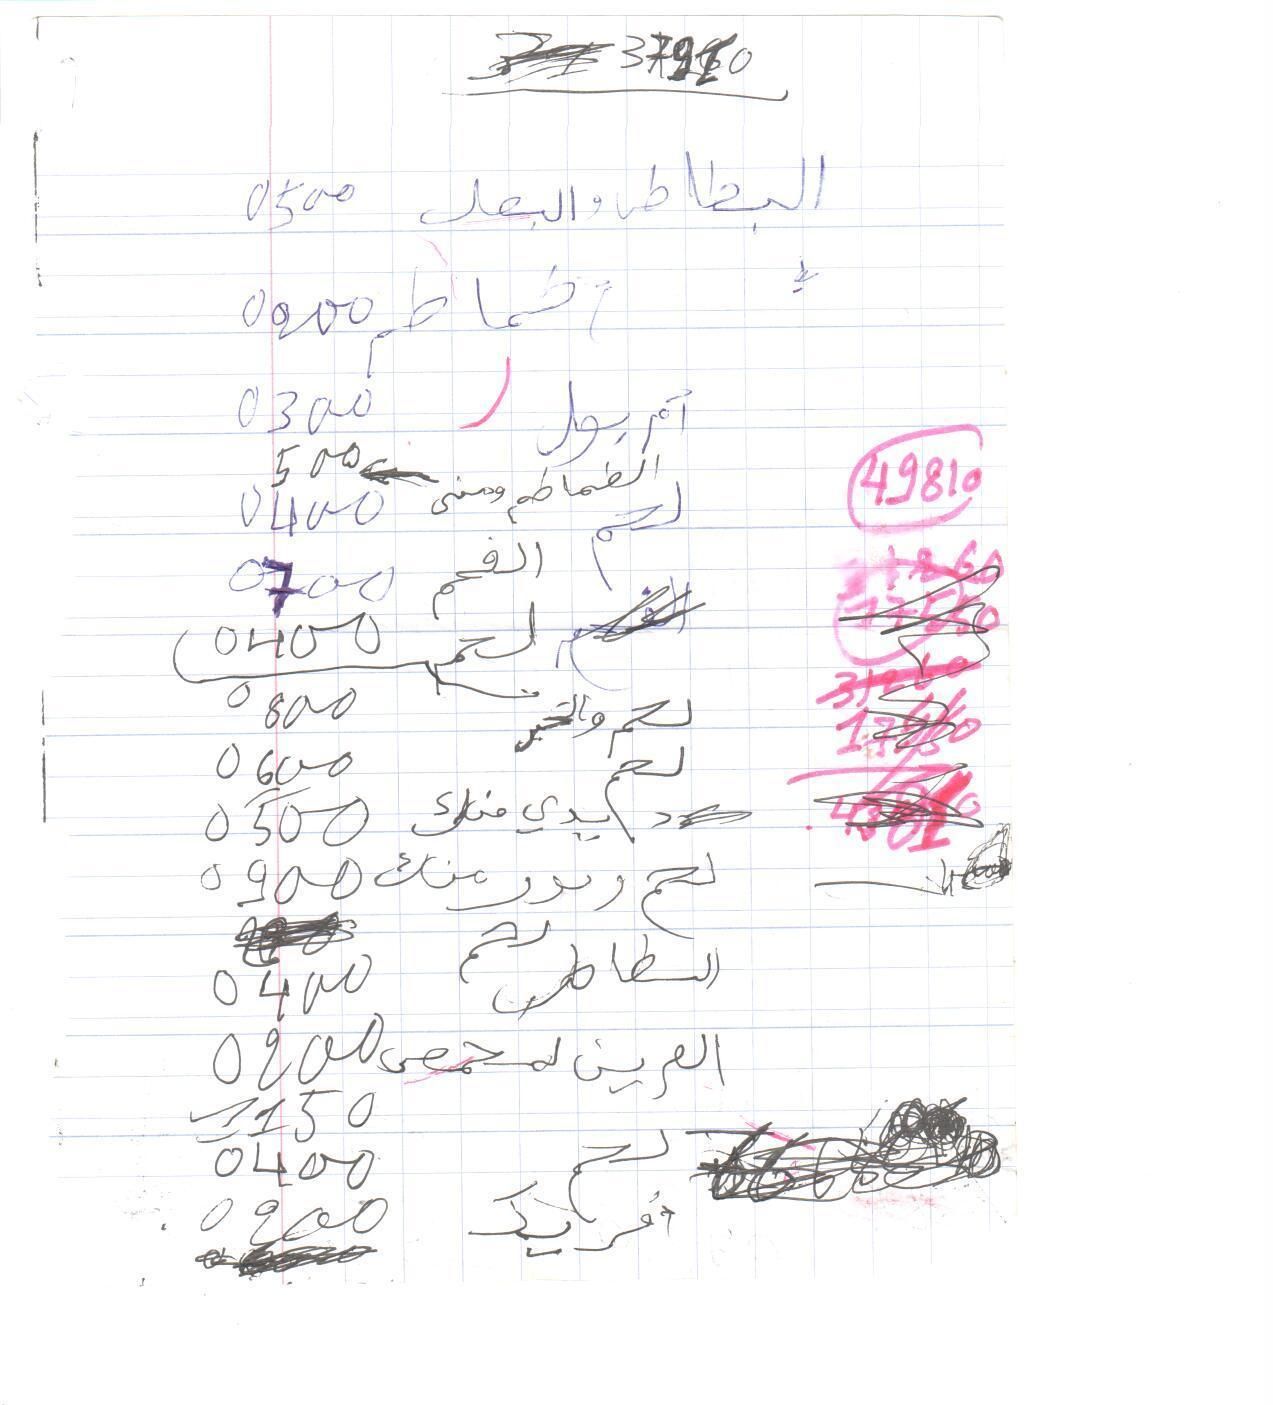 Al-Qaida's Receipts: From 60-Cent Cake To A $6,800